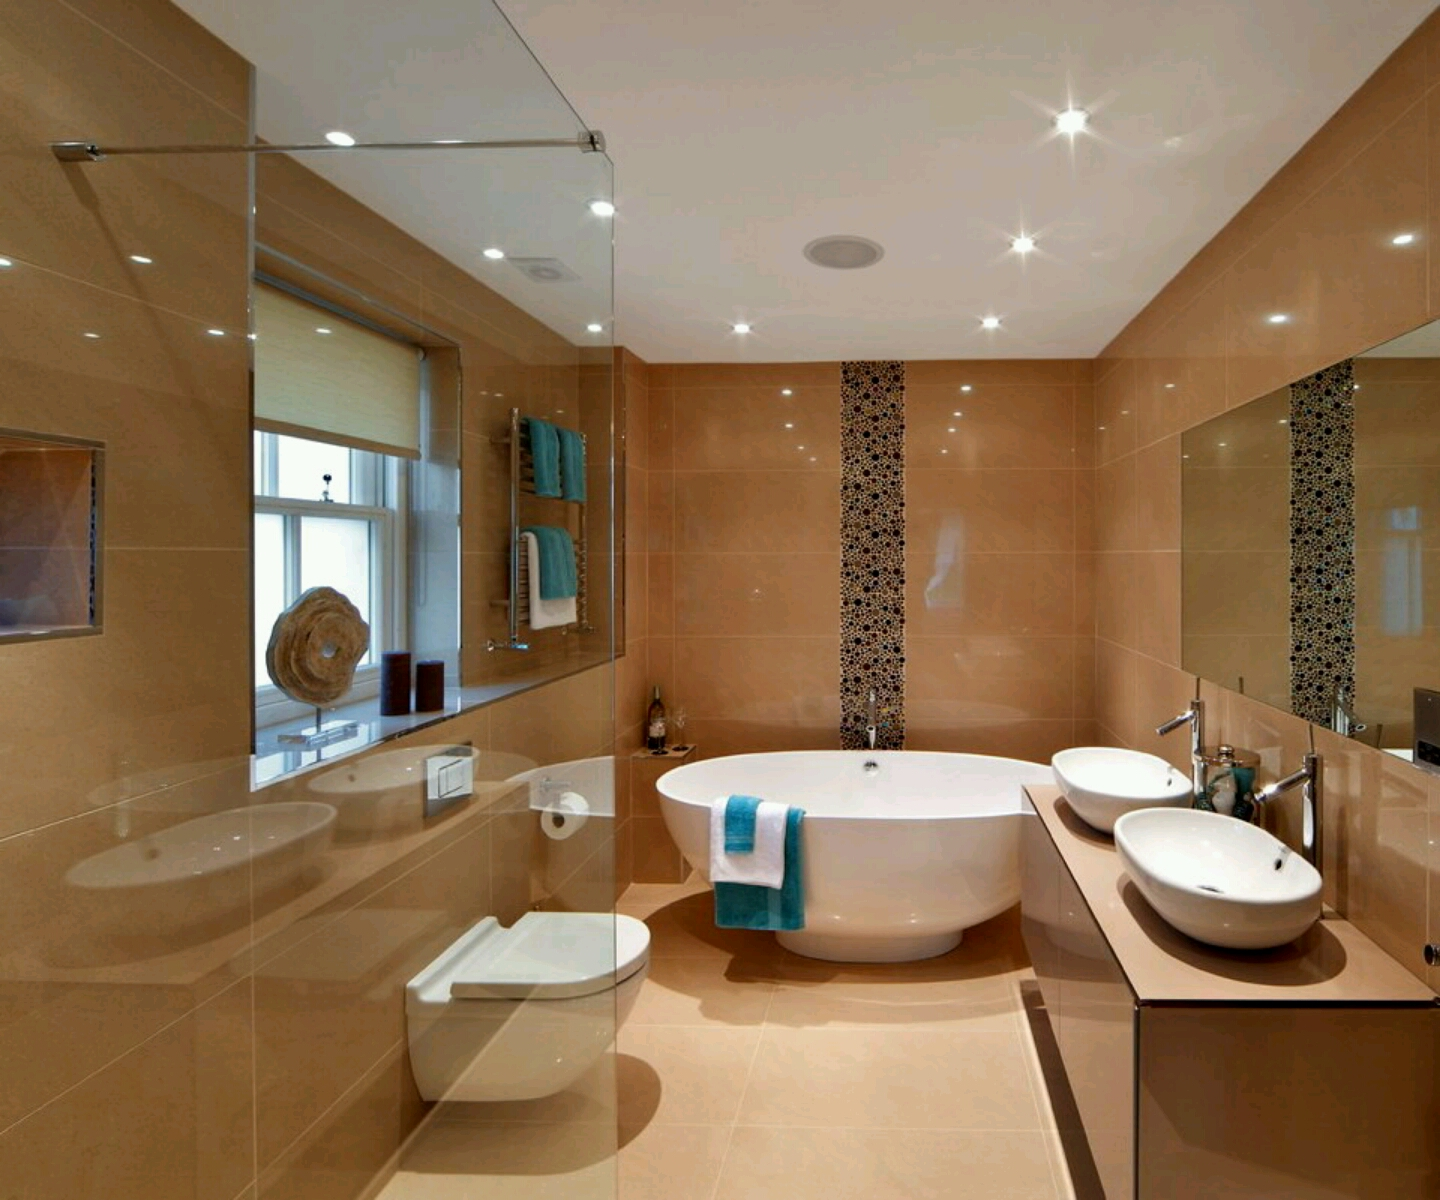 New home designs latest luxury modern bathrooms designs for Bathroom ideas images